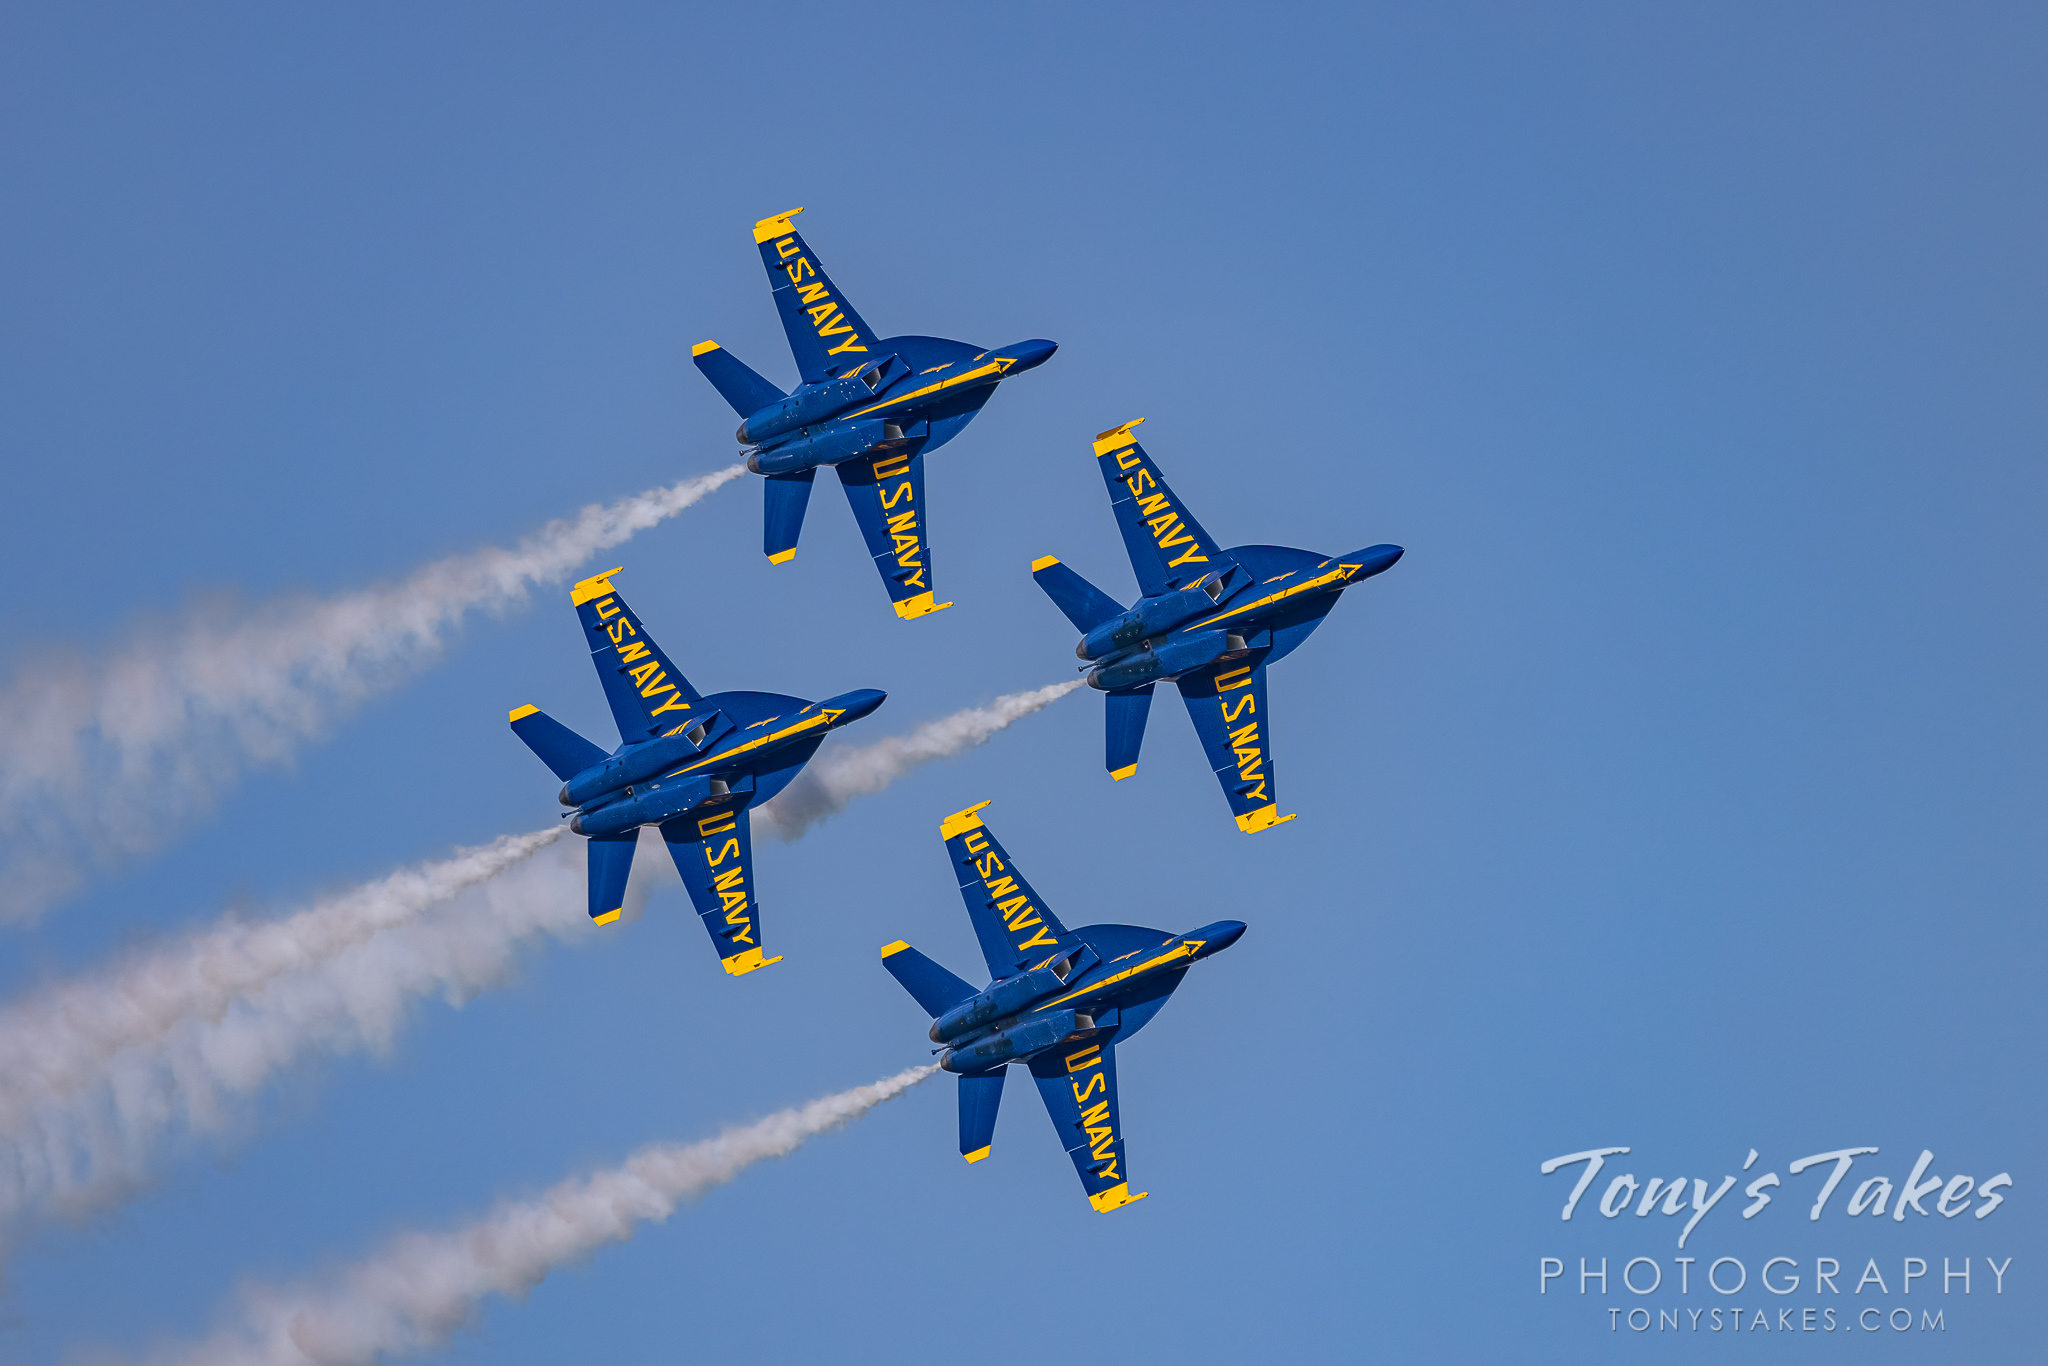 The Blue Angels in their diamond formation fly by. (© Tony's Takes)